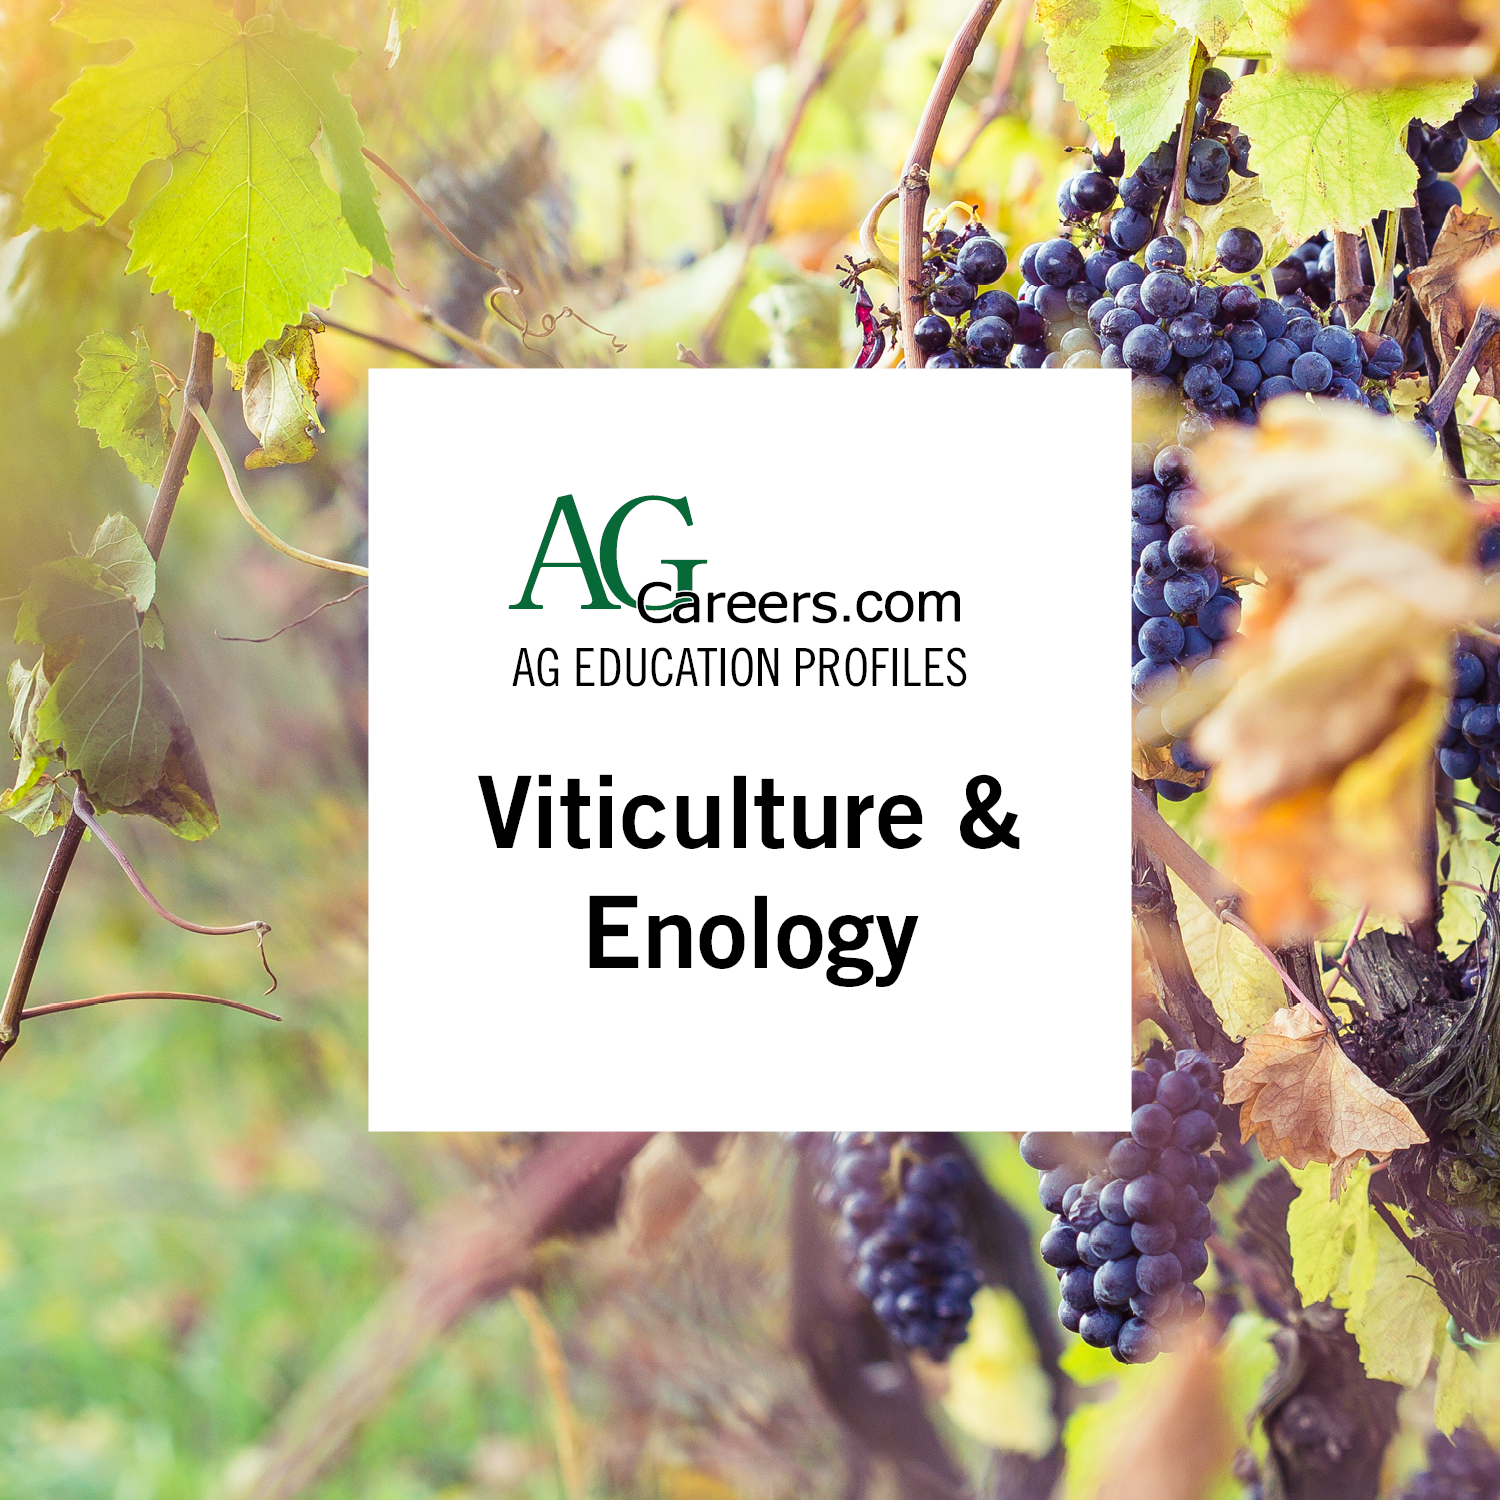 viticulture & enology